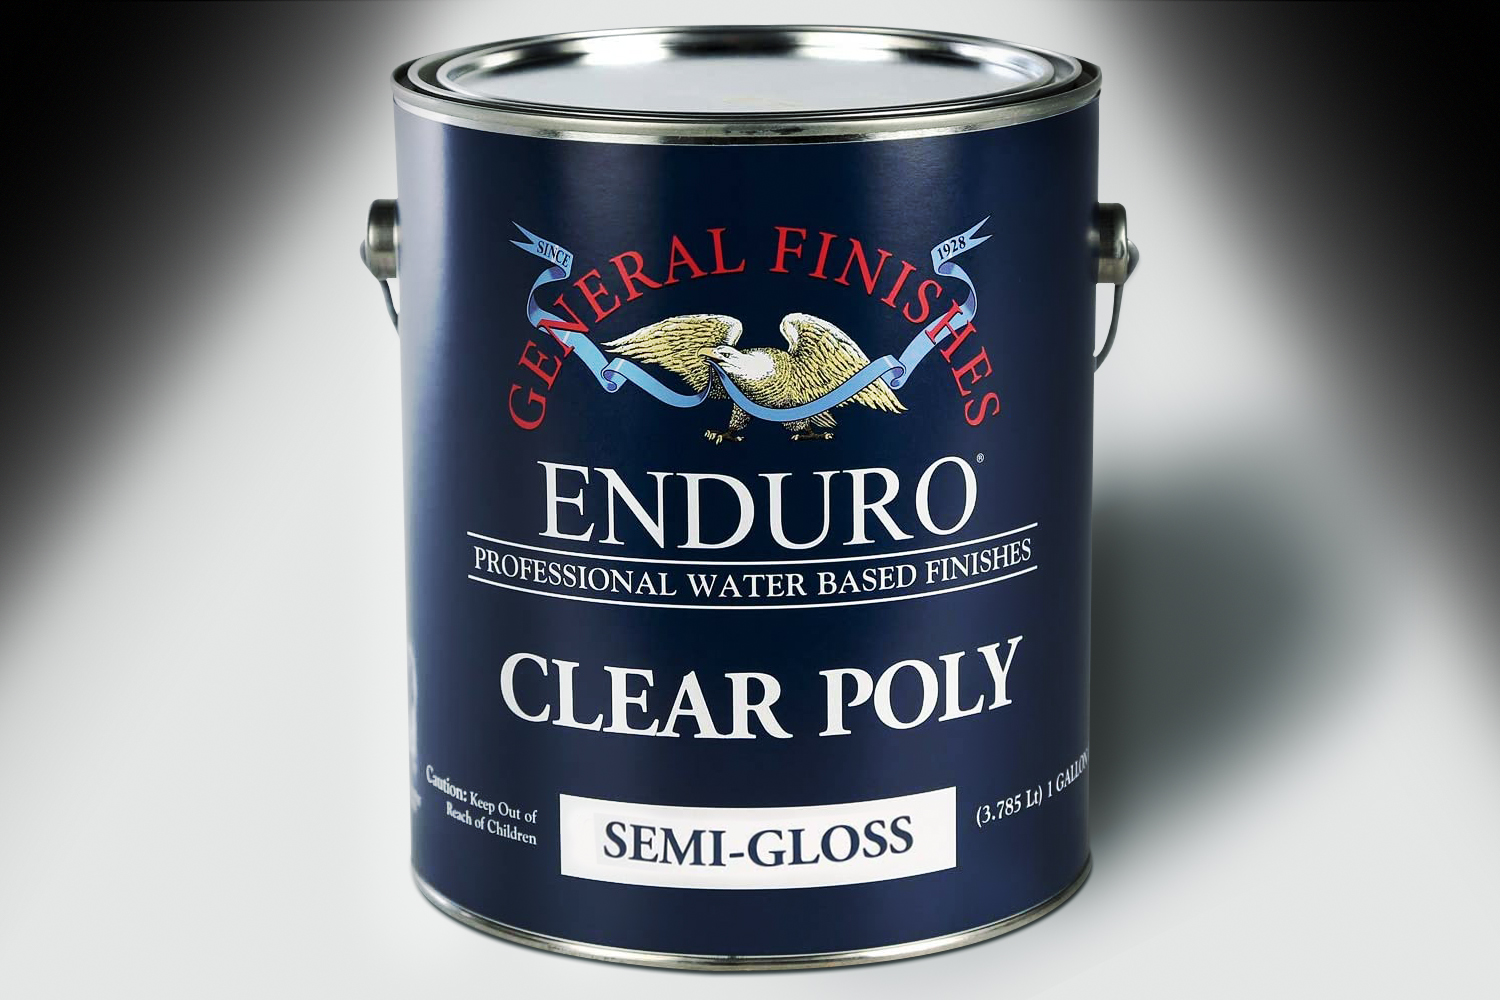 General Finishes Enduro Clear Poly Semi-Gloss Gallon